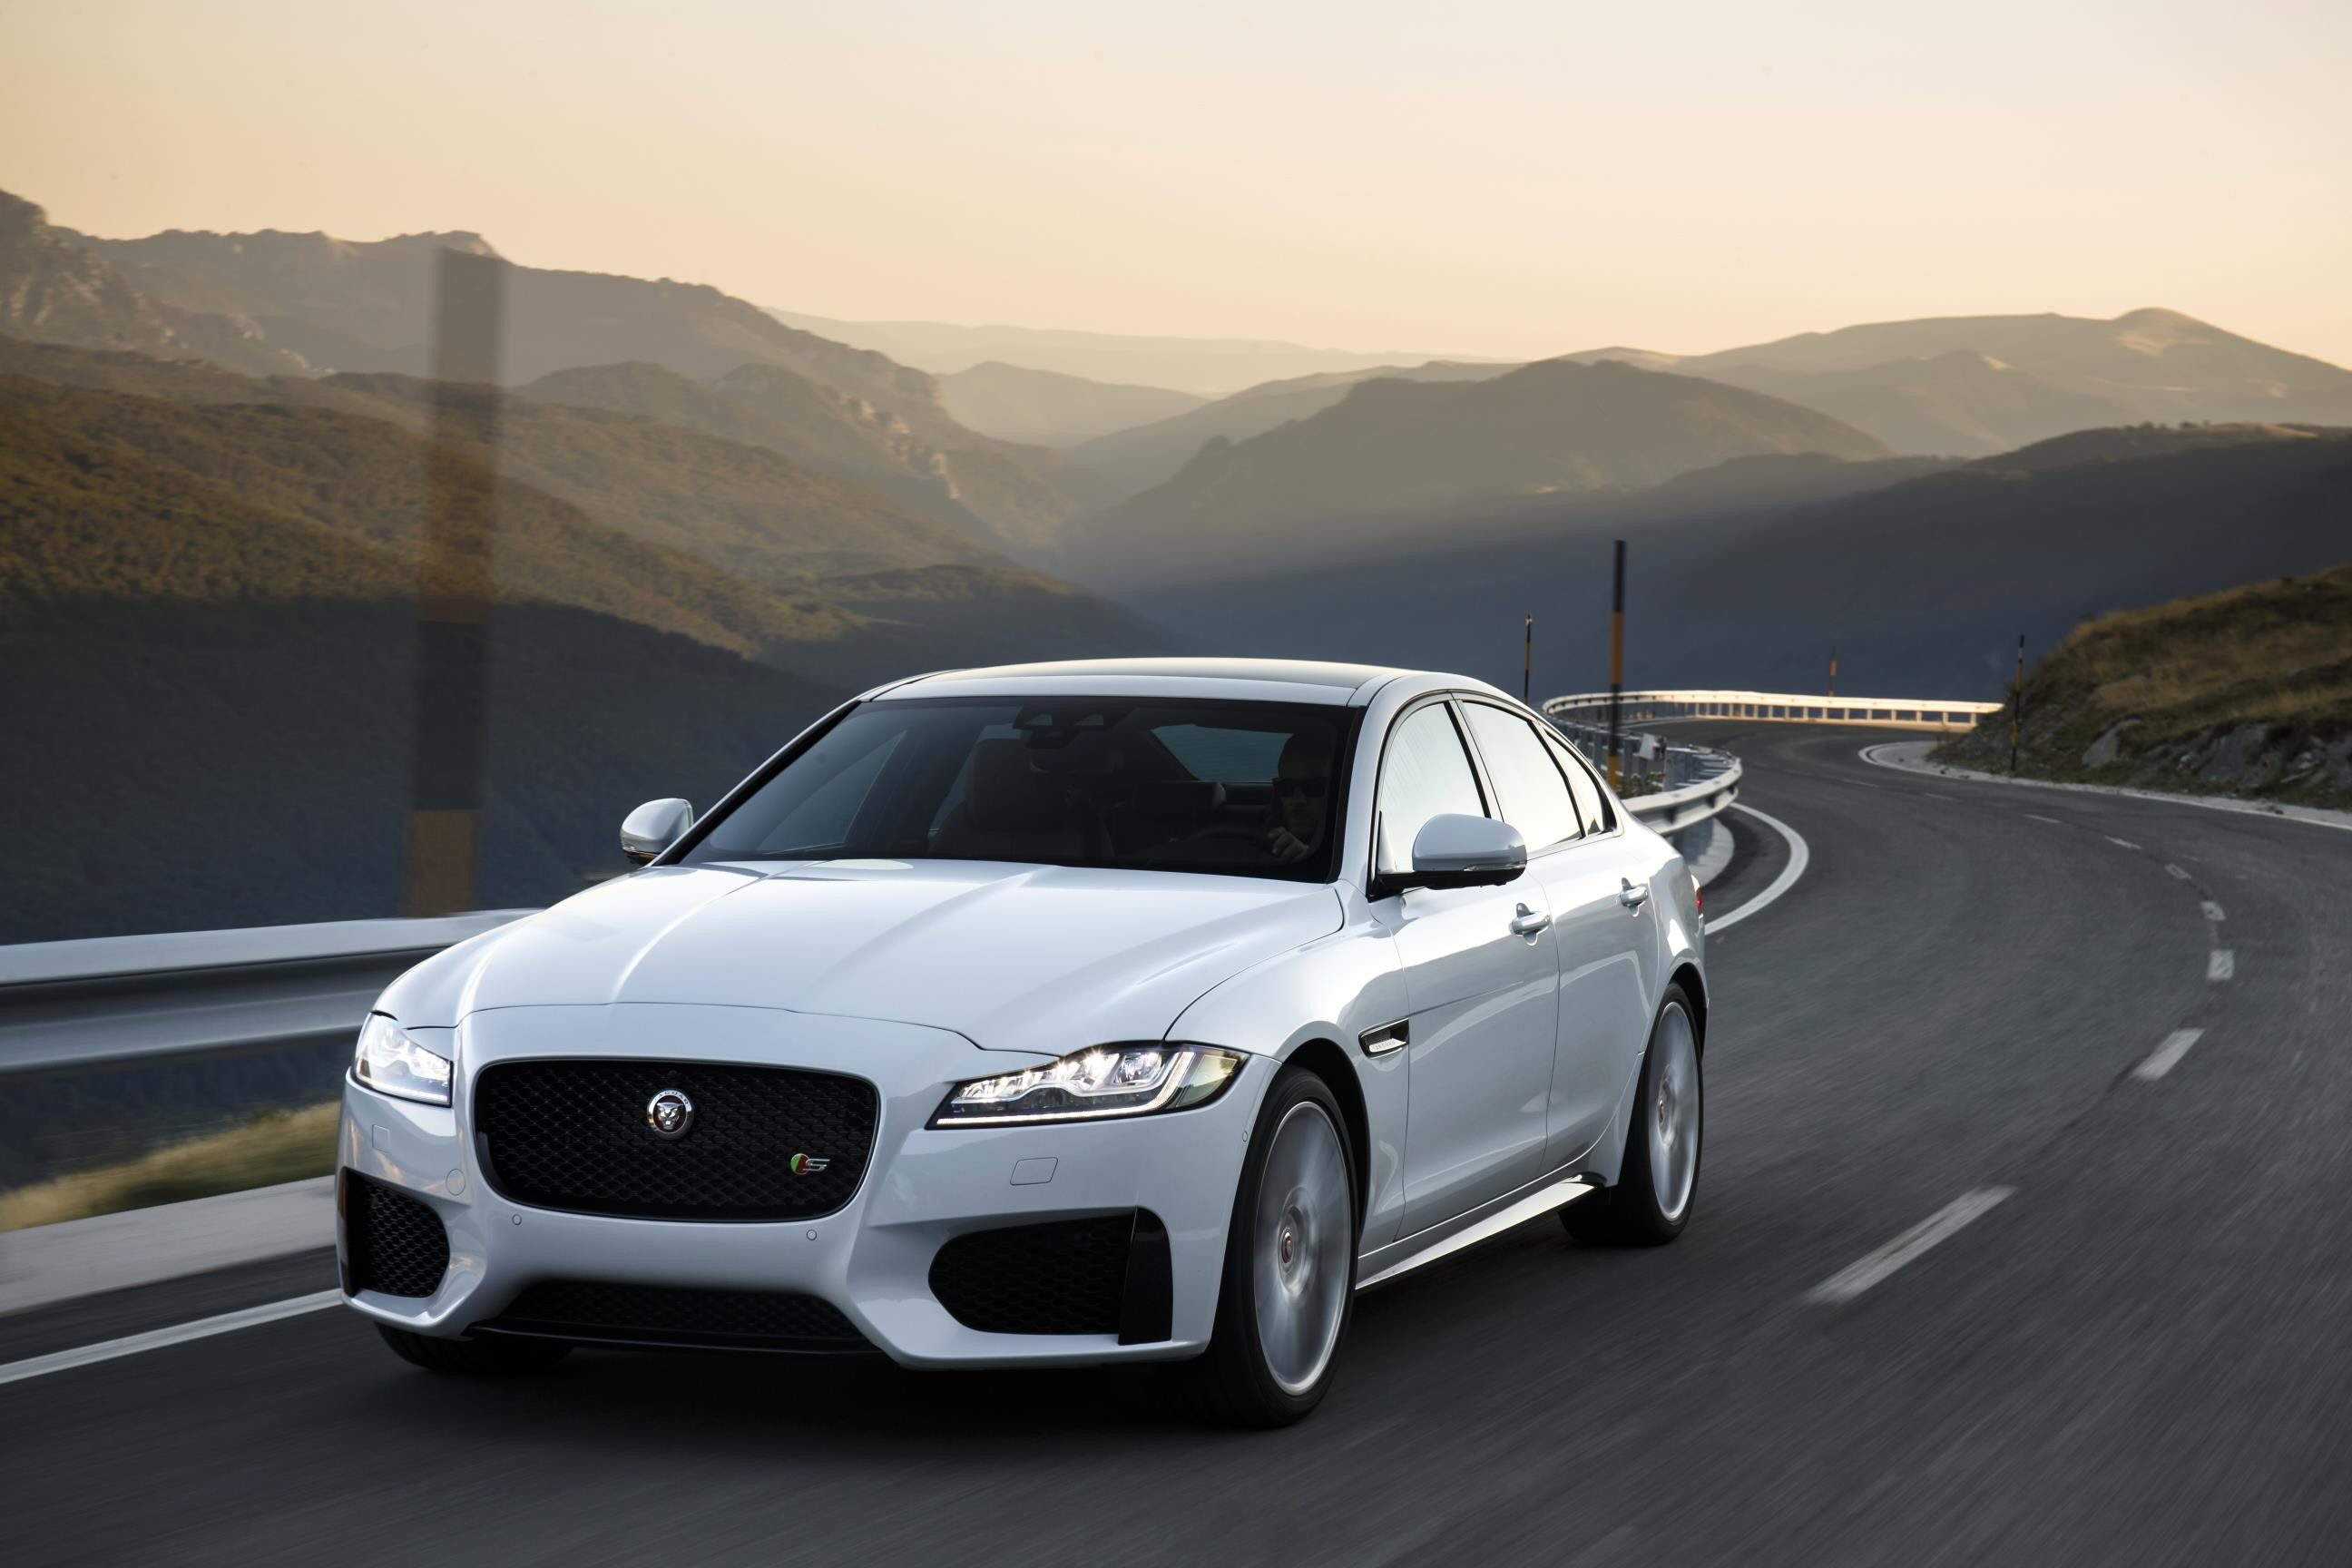 White Jaguar XF driving towards you